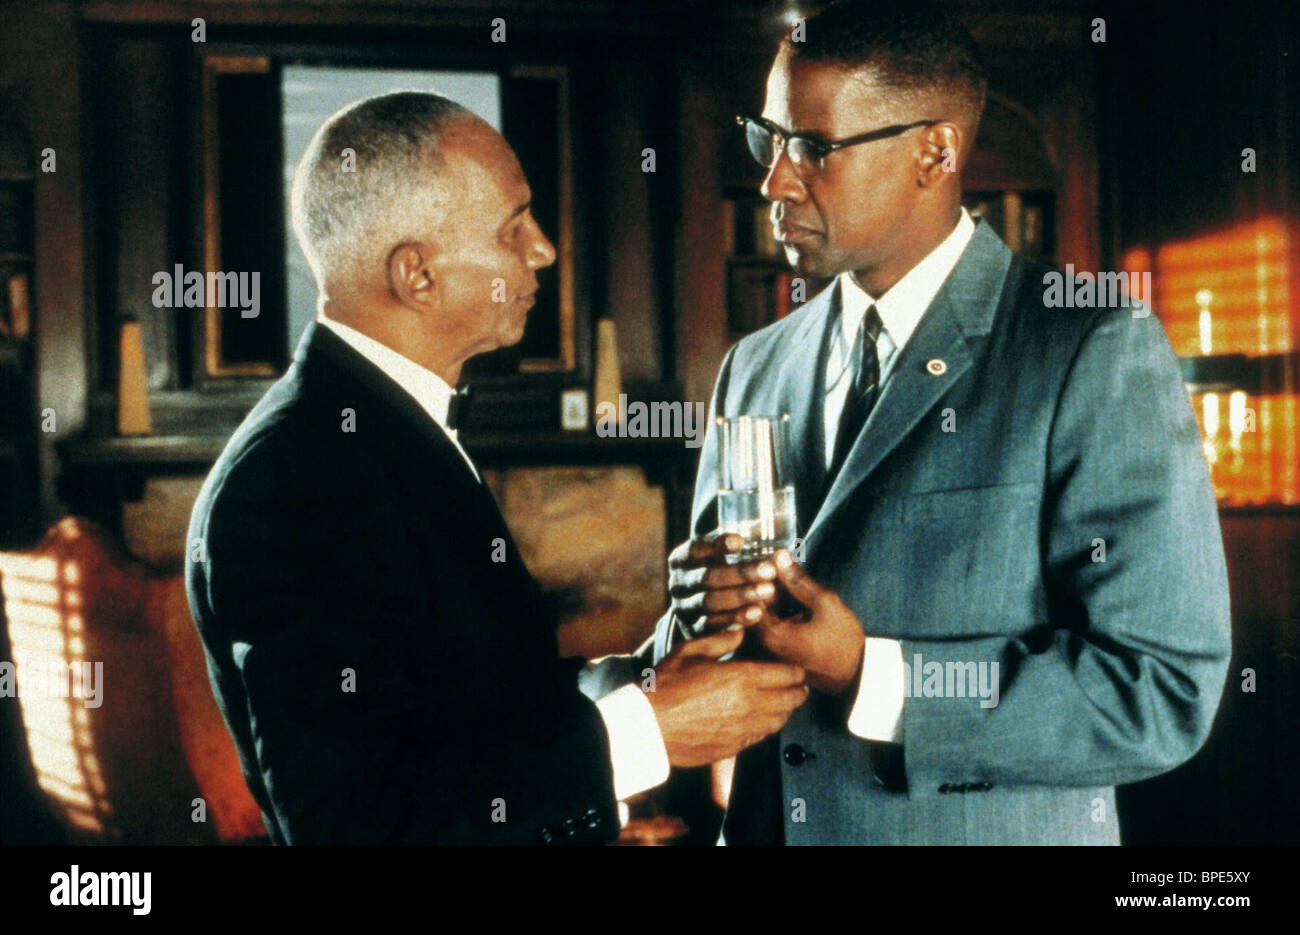 AL FREEMAN JR., Denzel Washington, Malcolm X, 1992 Imagen De Stock